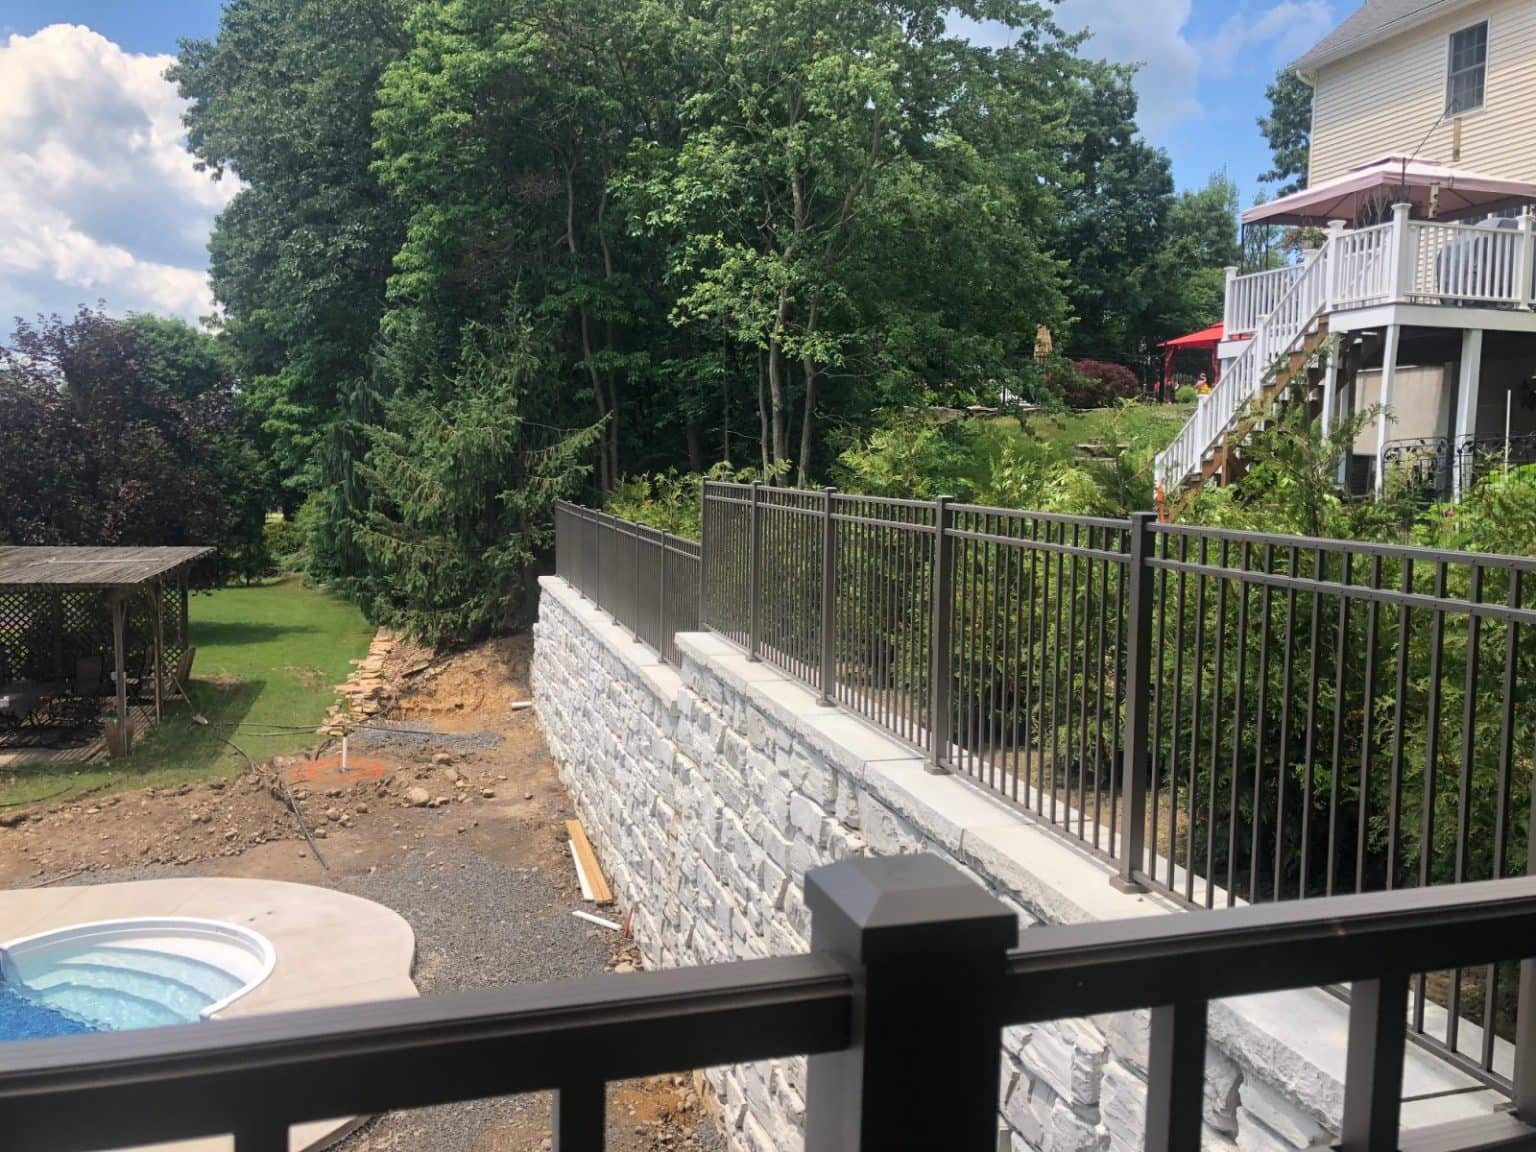 View from on top of a MagnumStone wall showing fenceposts and fence